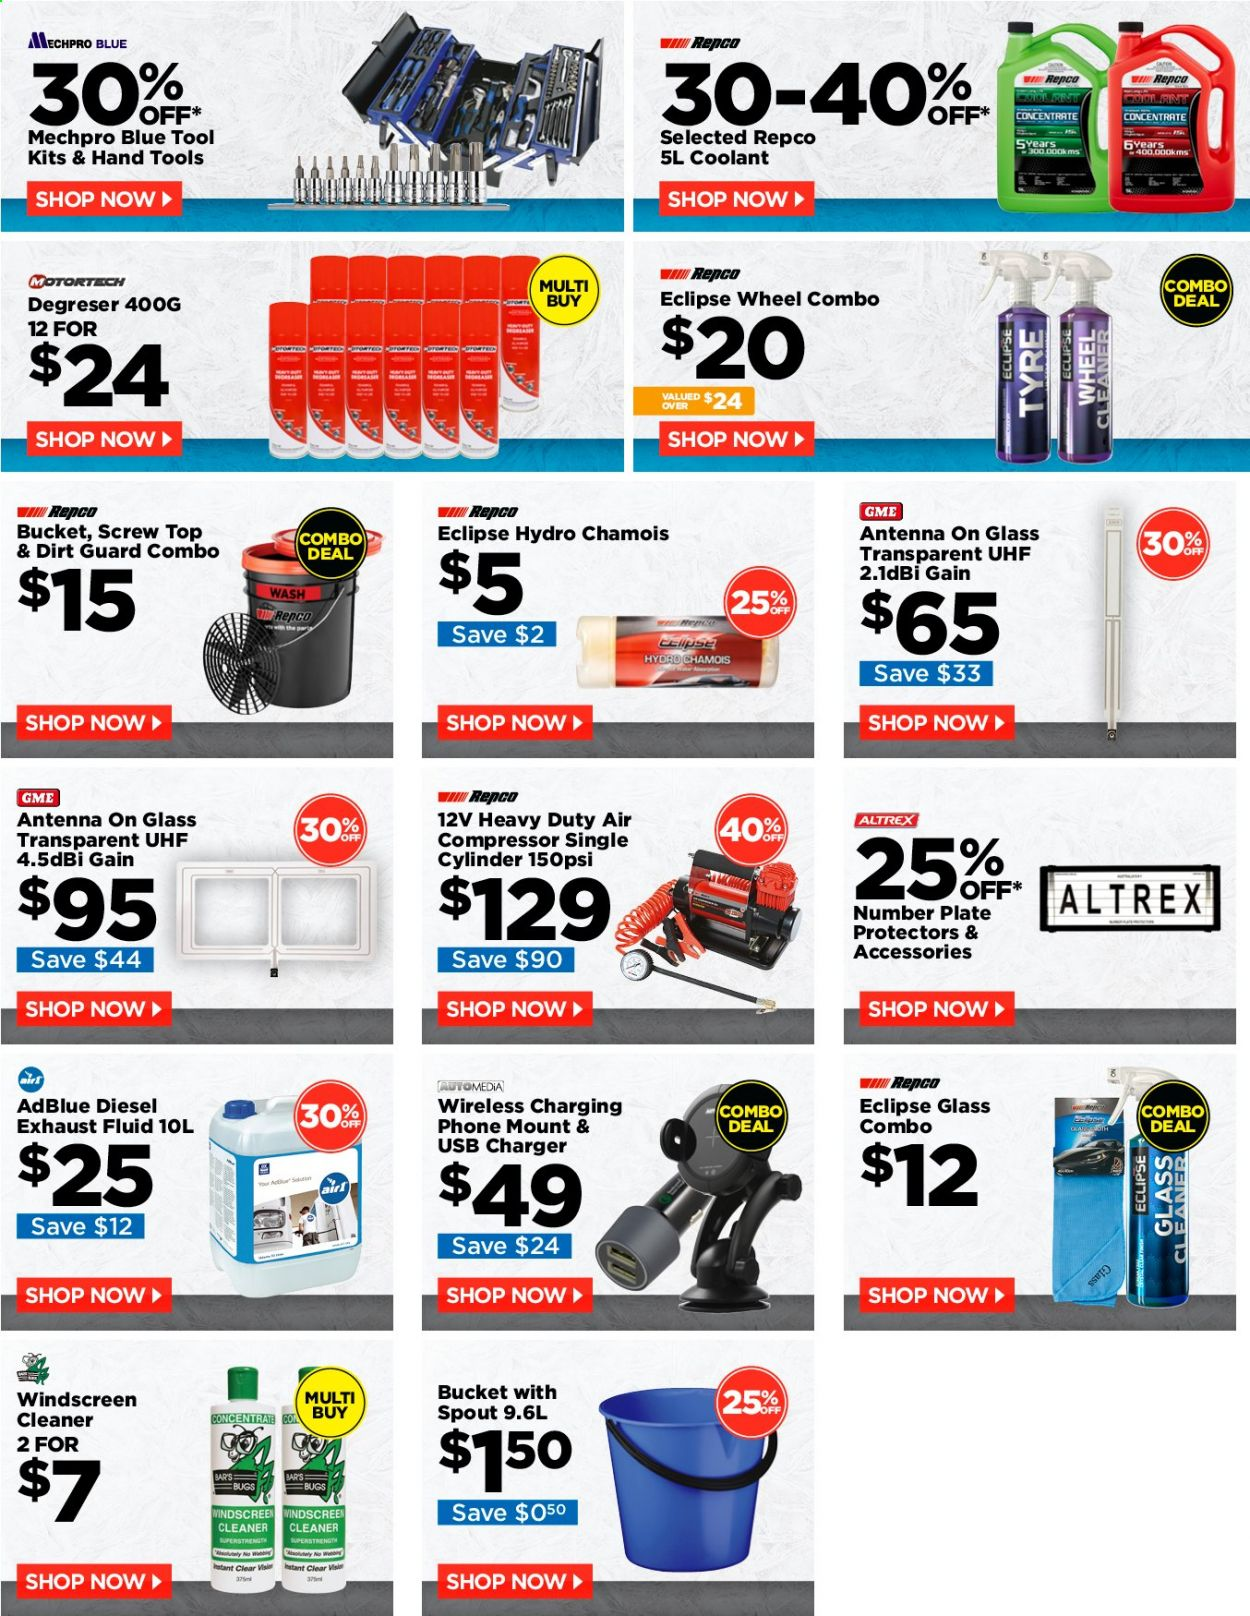 Repco Catalogue - 1.11.2020 - 30.11.2020 - Sales products - air compressor, Gain, USB, plate, charger, antenna, bucket, cleaner, phone, bar, tools, heavy duty. Page 1.